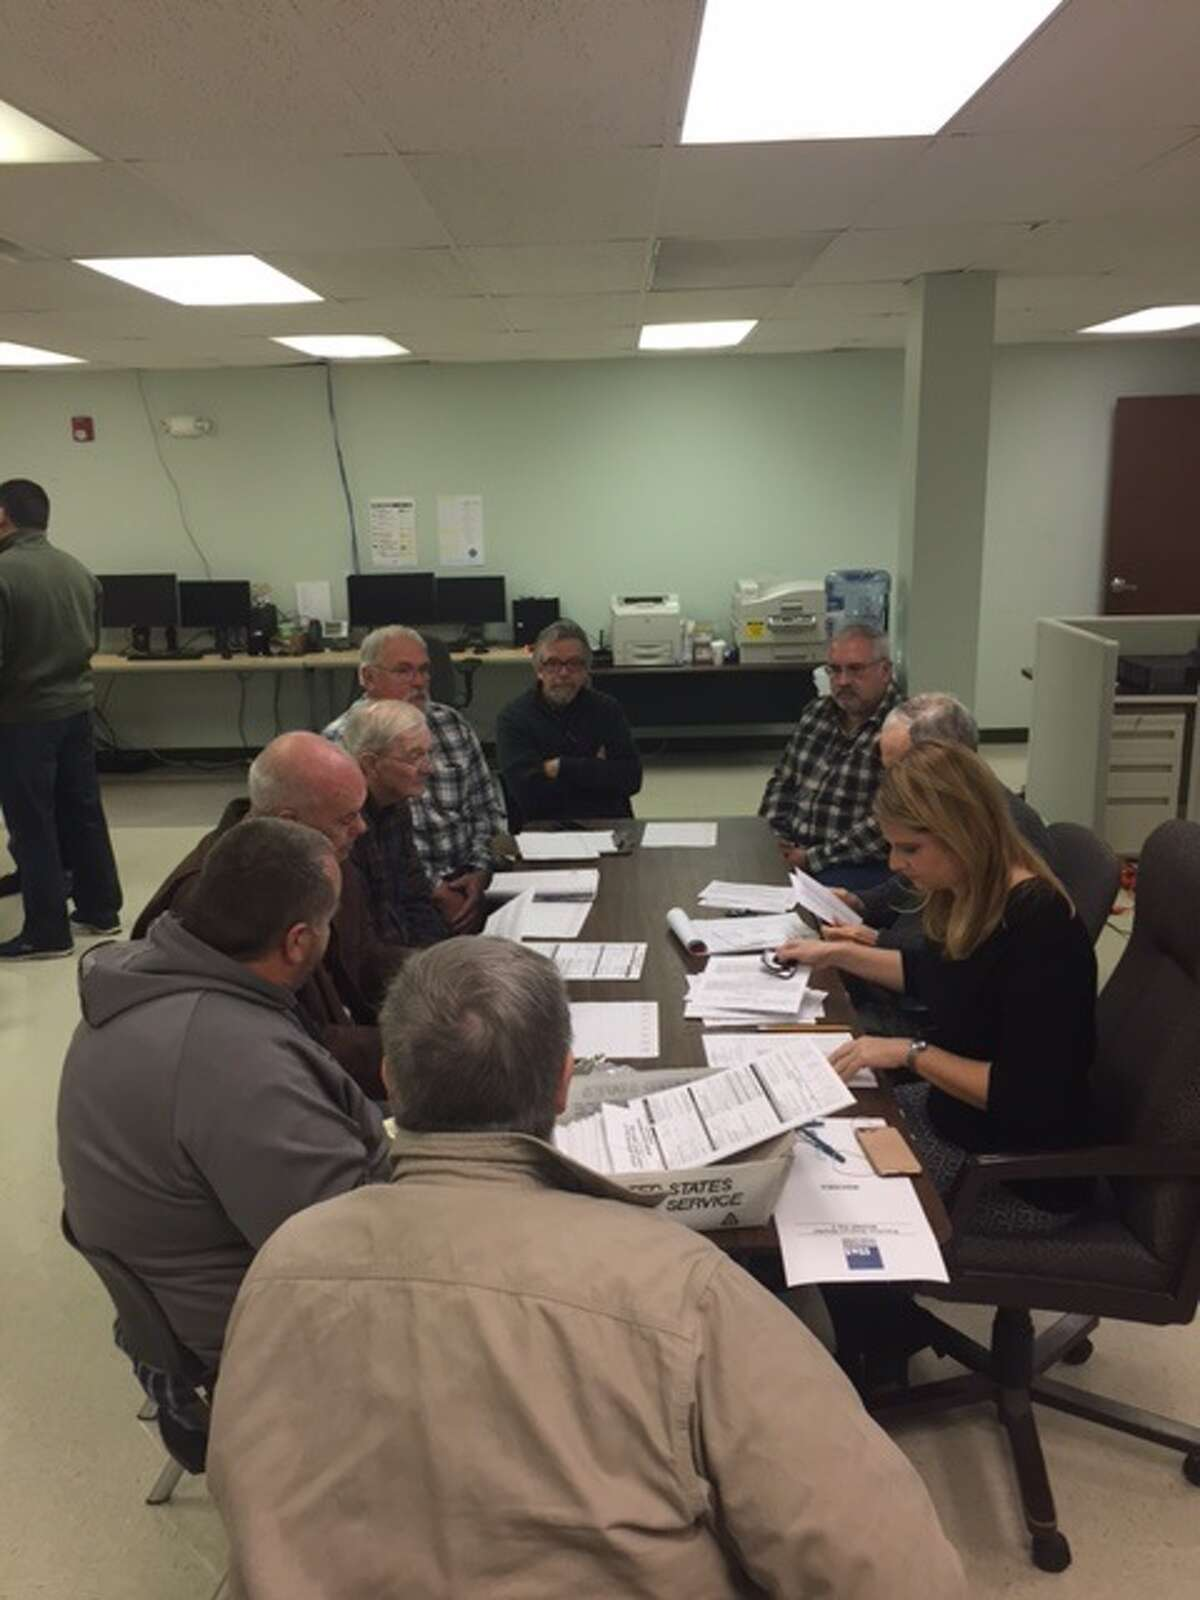 Absentee ballots are counted for Town of Berne races at the Albany County Board of Elections on Wednesday, Nov. 15, 2017 in Albany.